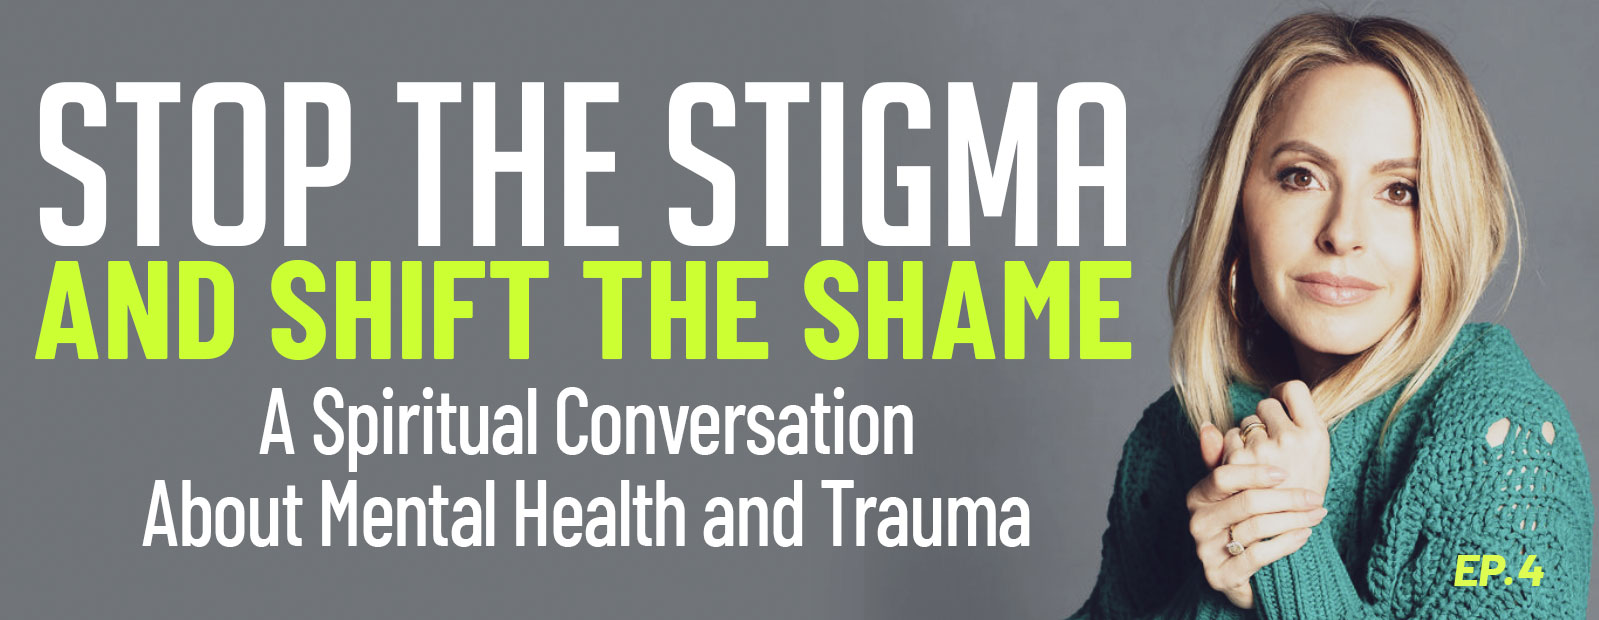 Stop the Stigma and Shift the Shame: A Conversation About Mental Health and Trauma